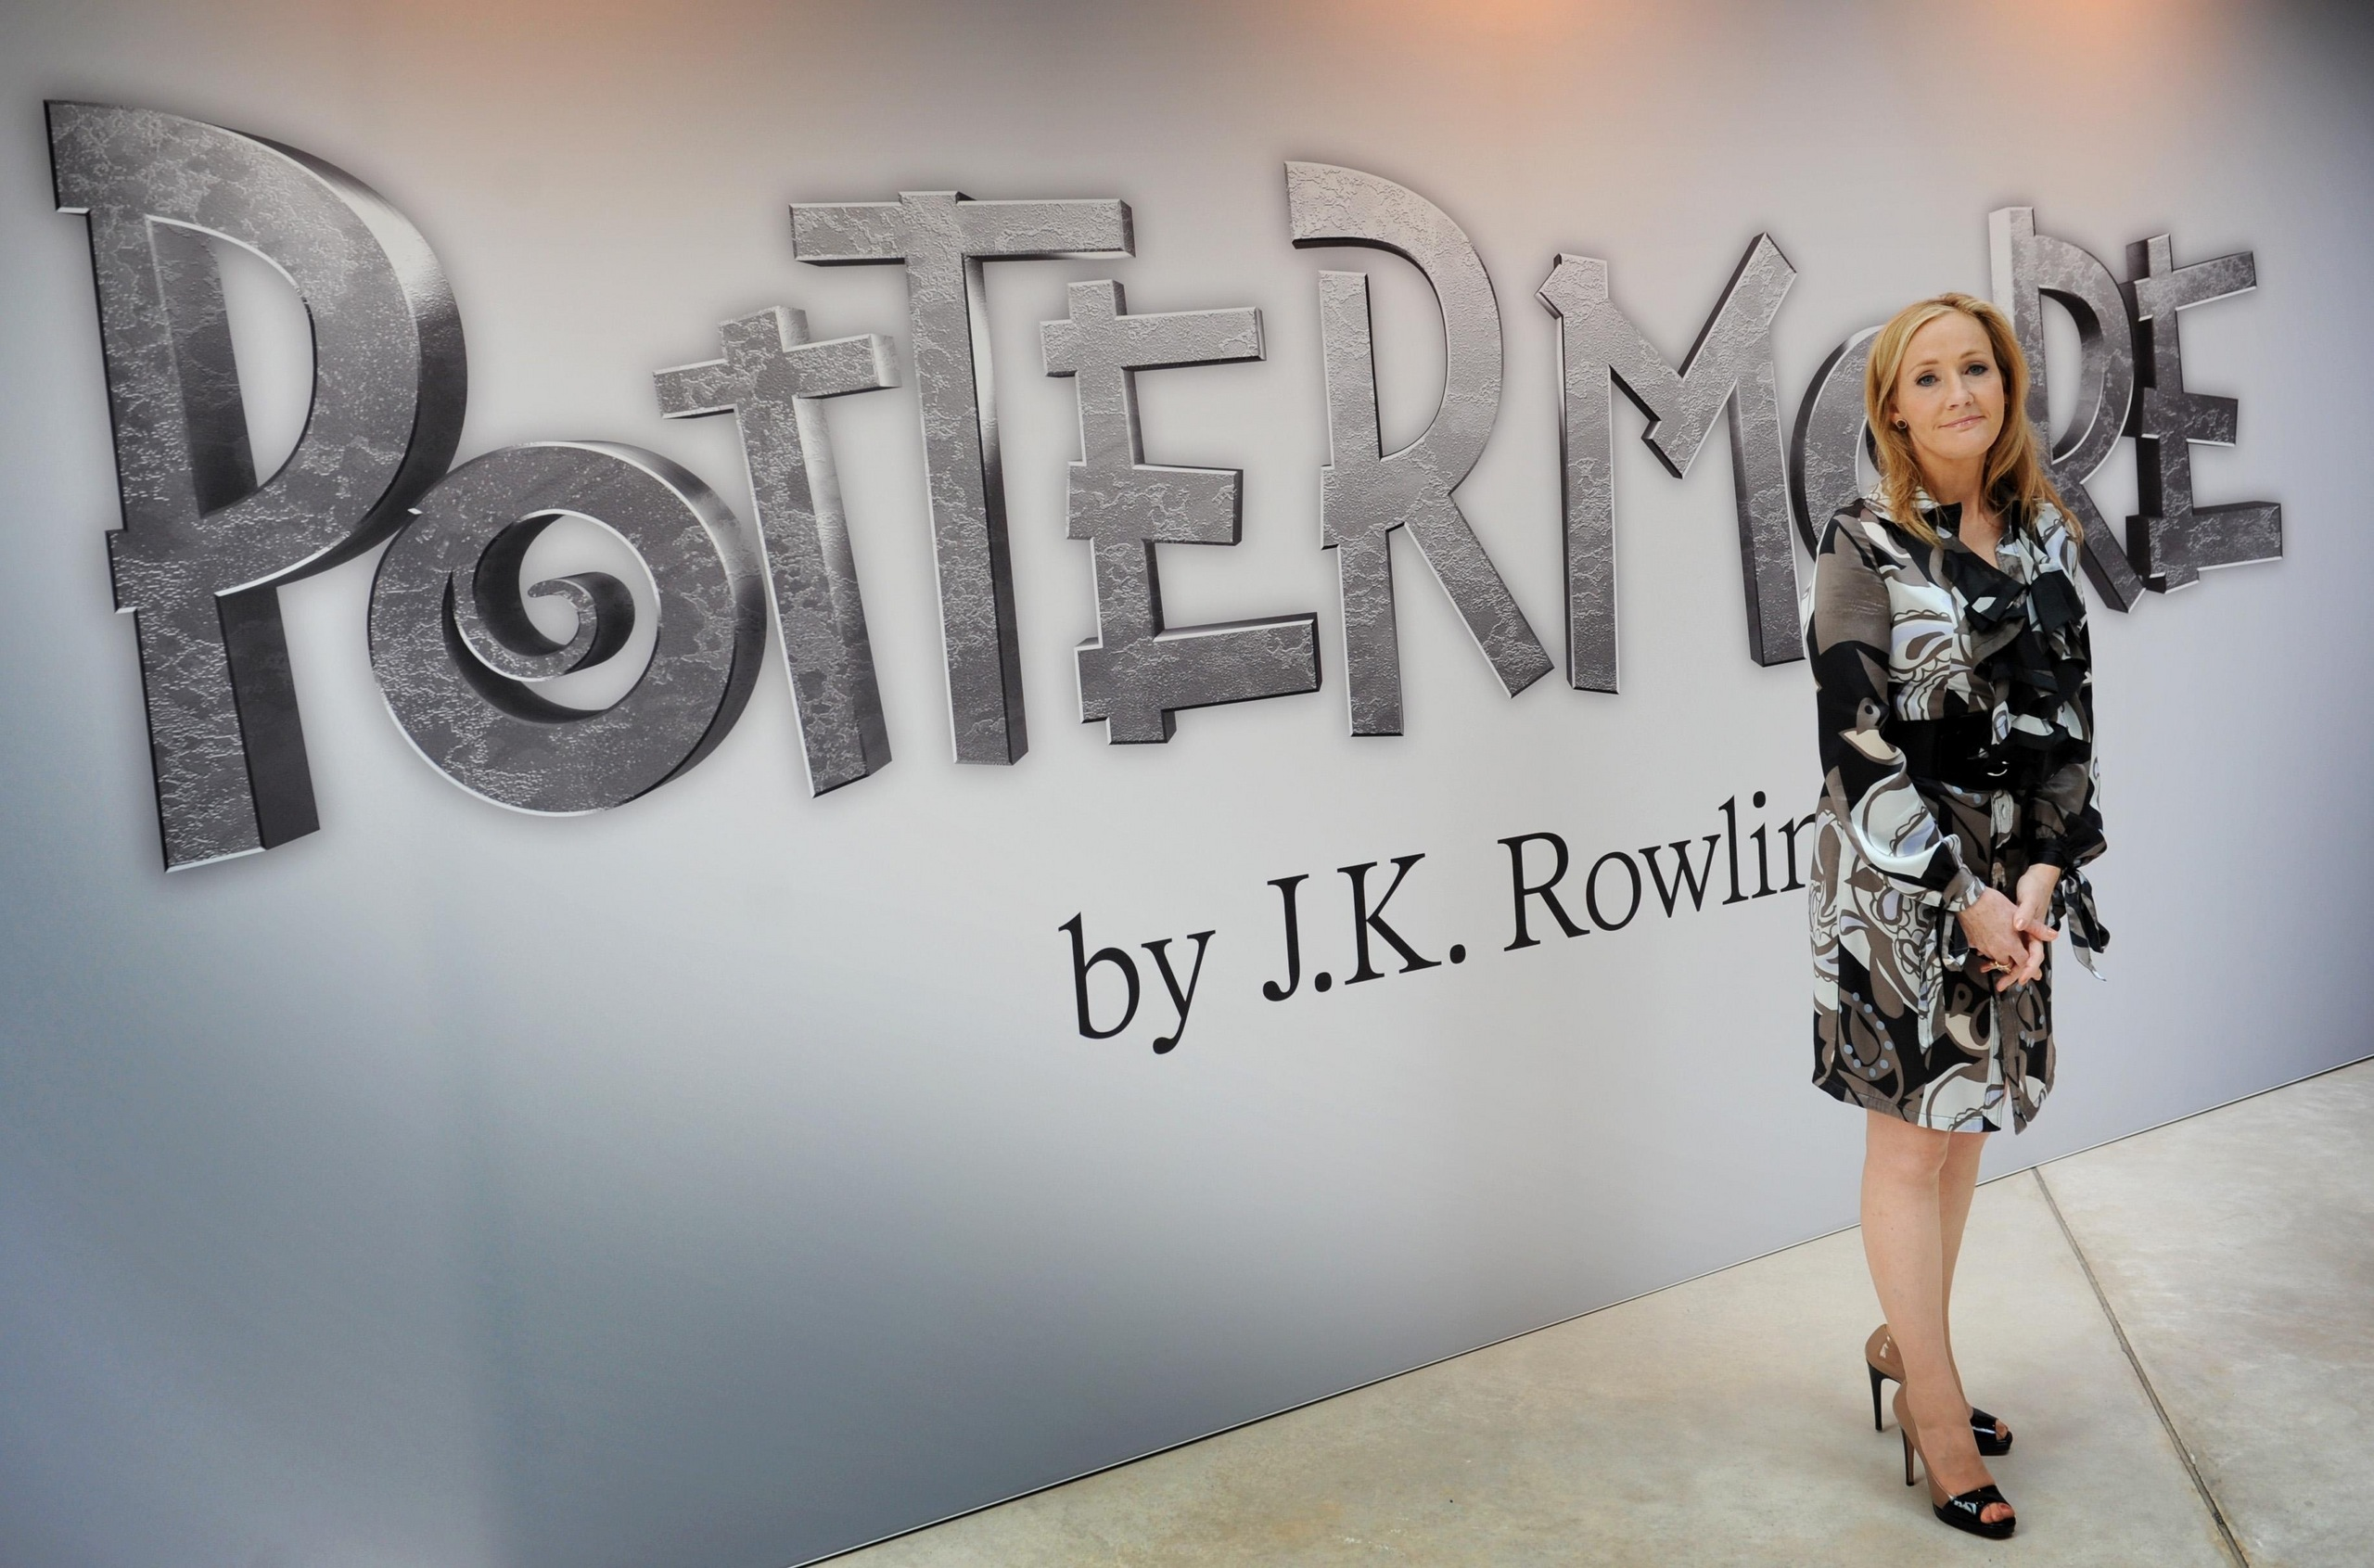 j-k-rowling-updates-official-site-on-pottermore-photos-from-london-press-launch-hq-harry-potter-23131974-2560-1691.jpg